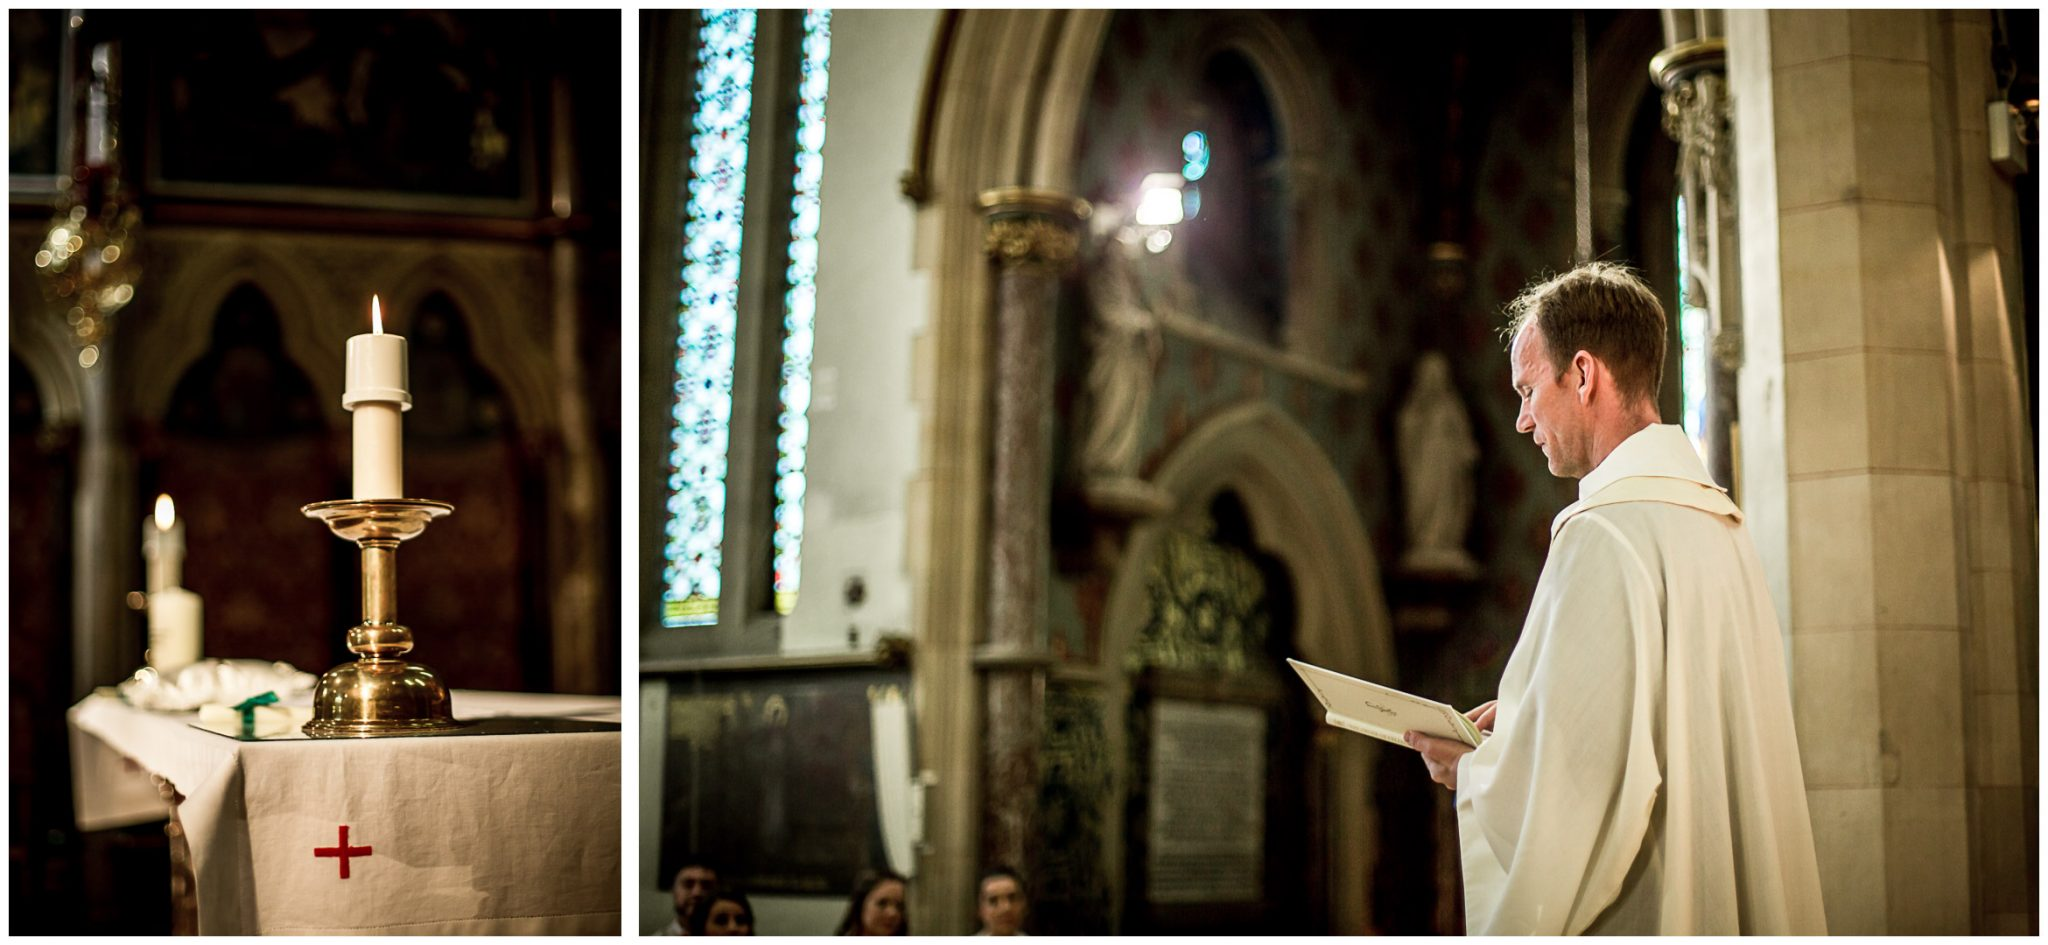 The priest leads the catholic wedding ceremony at St Bede's church basingstoke